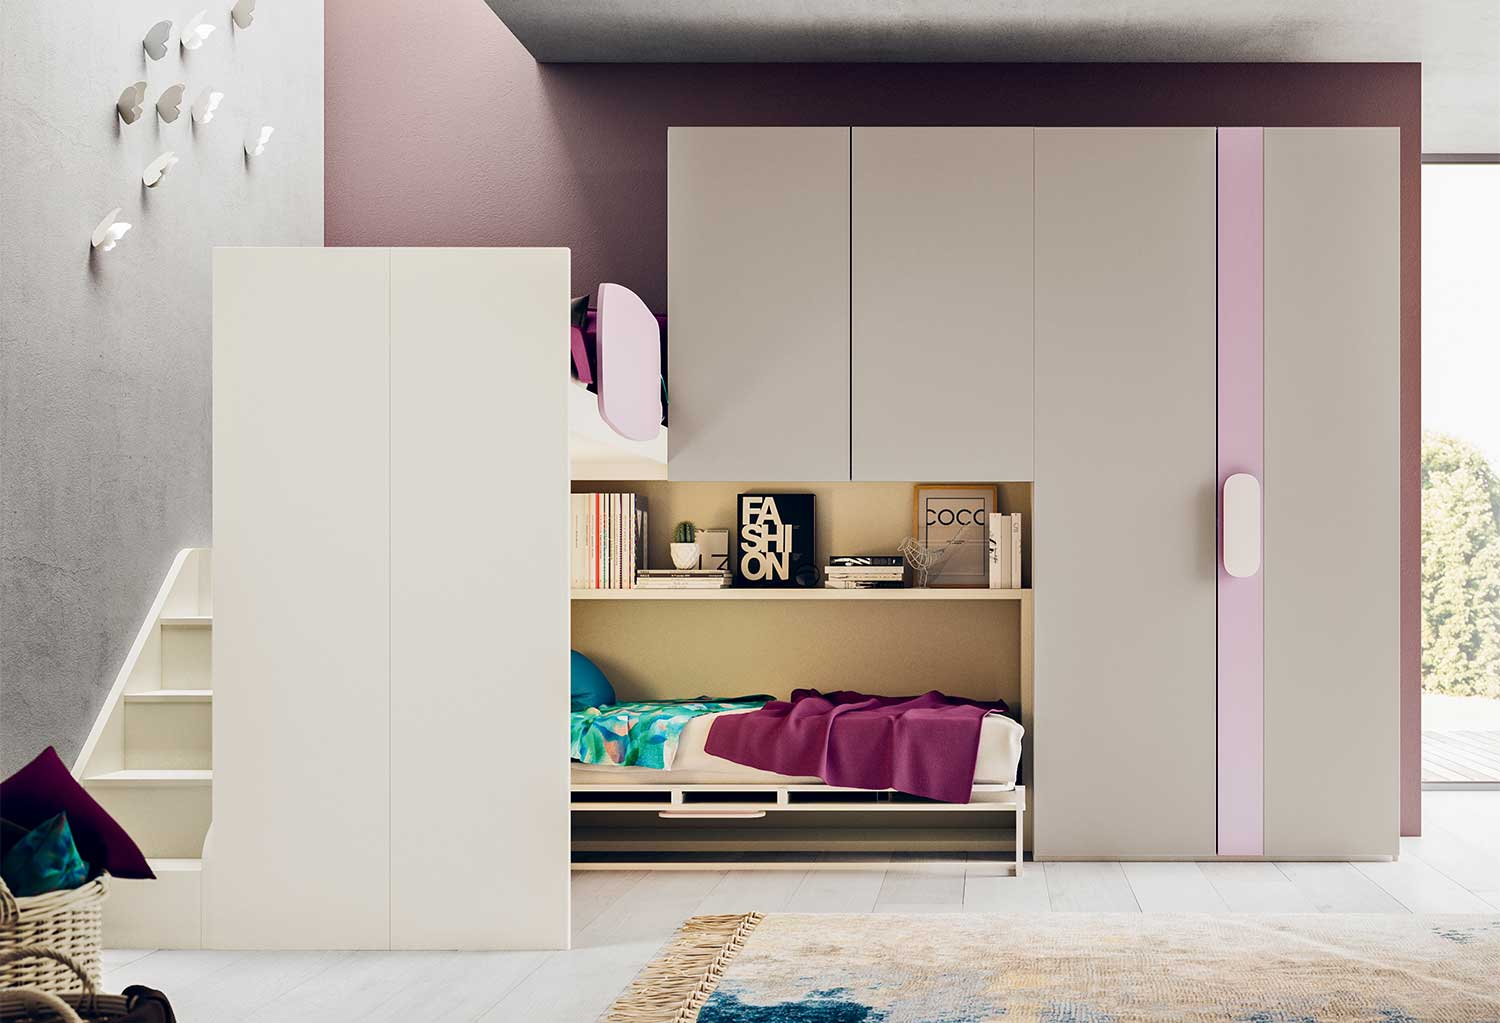 Below the wall wardrobe units you can accommodate a single bed or murphy bed